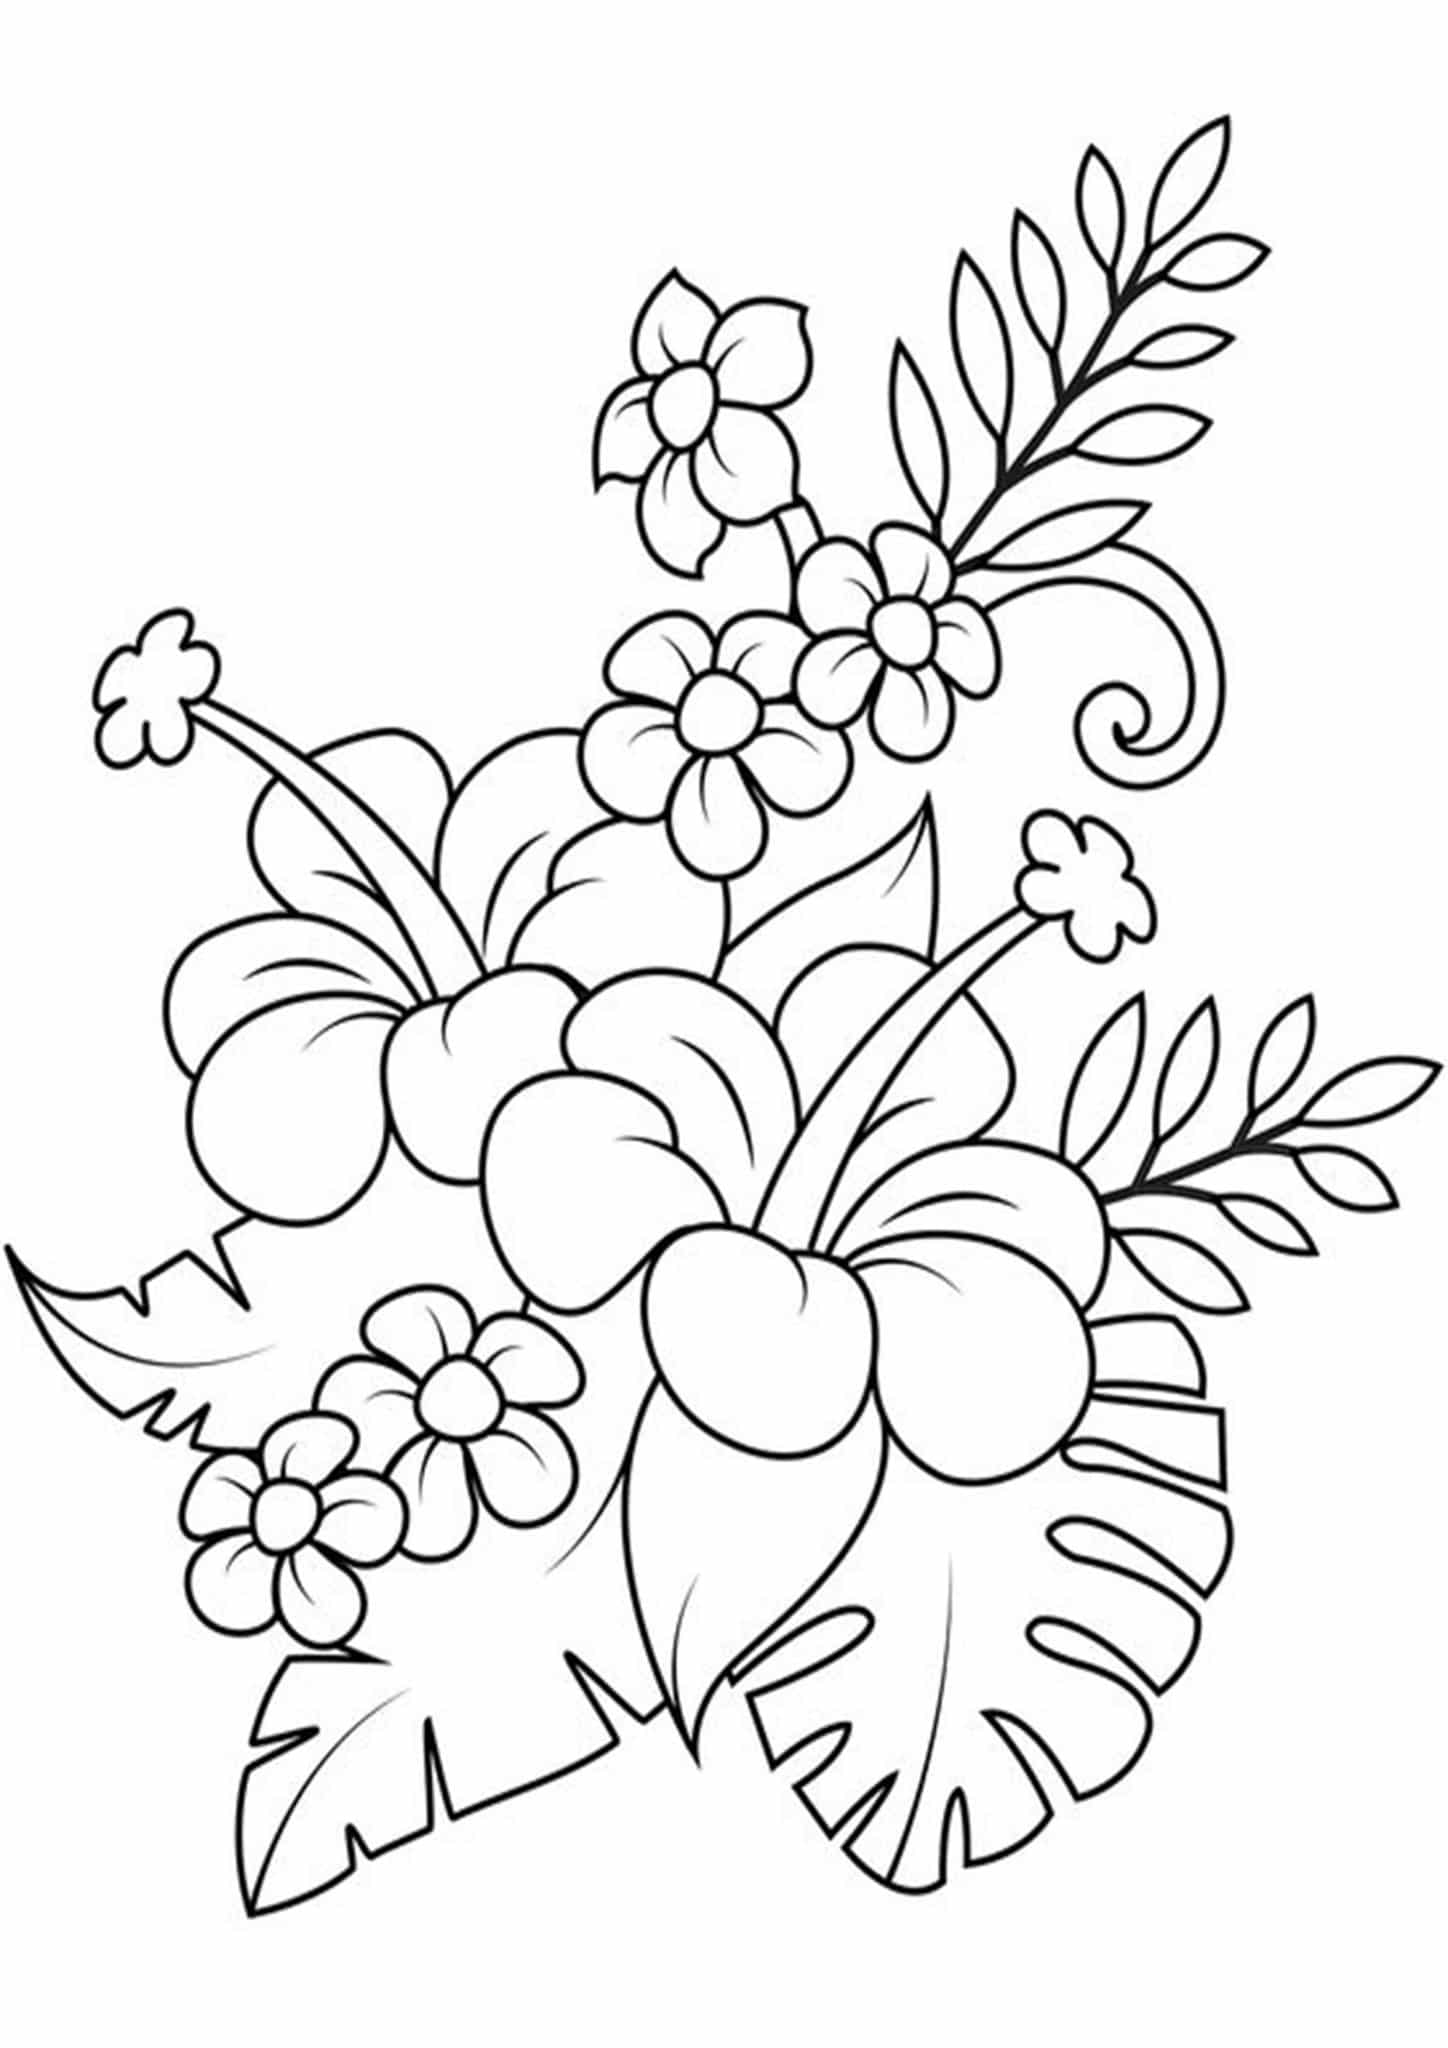 picture of flowers to print flower13 flowers coloring pages coloring page book for kids of to picture flowers print